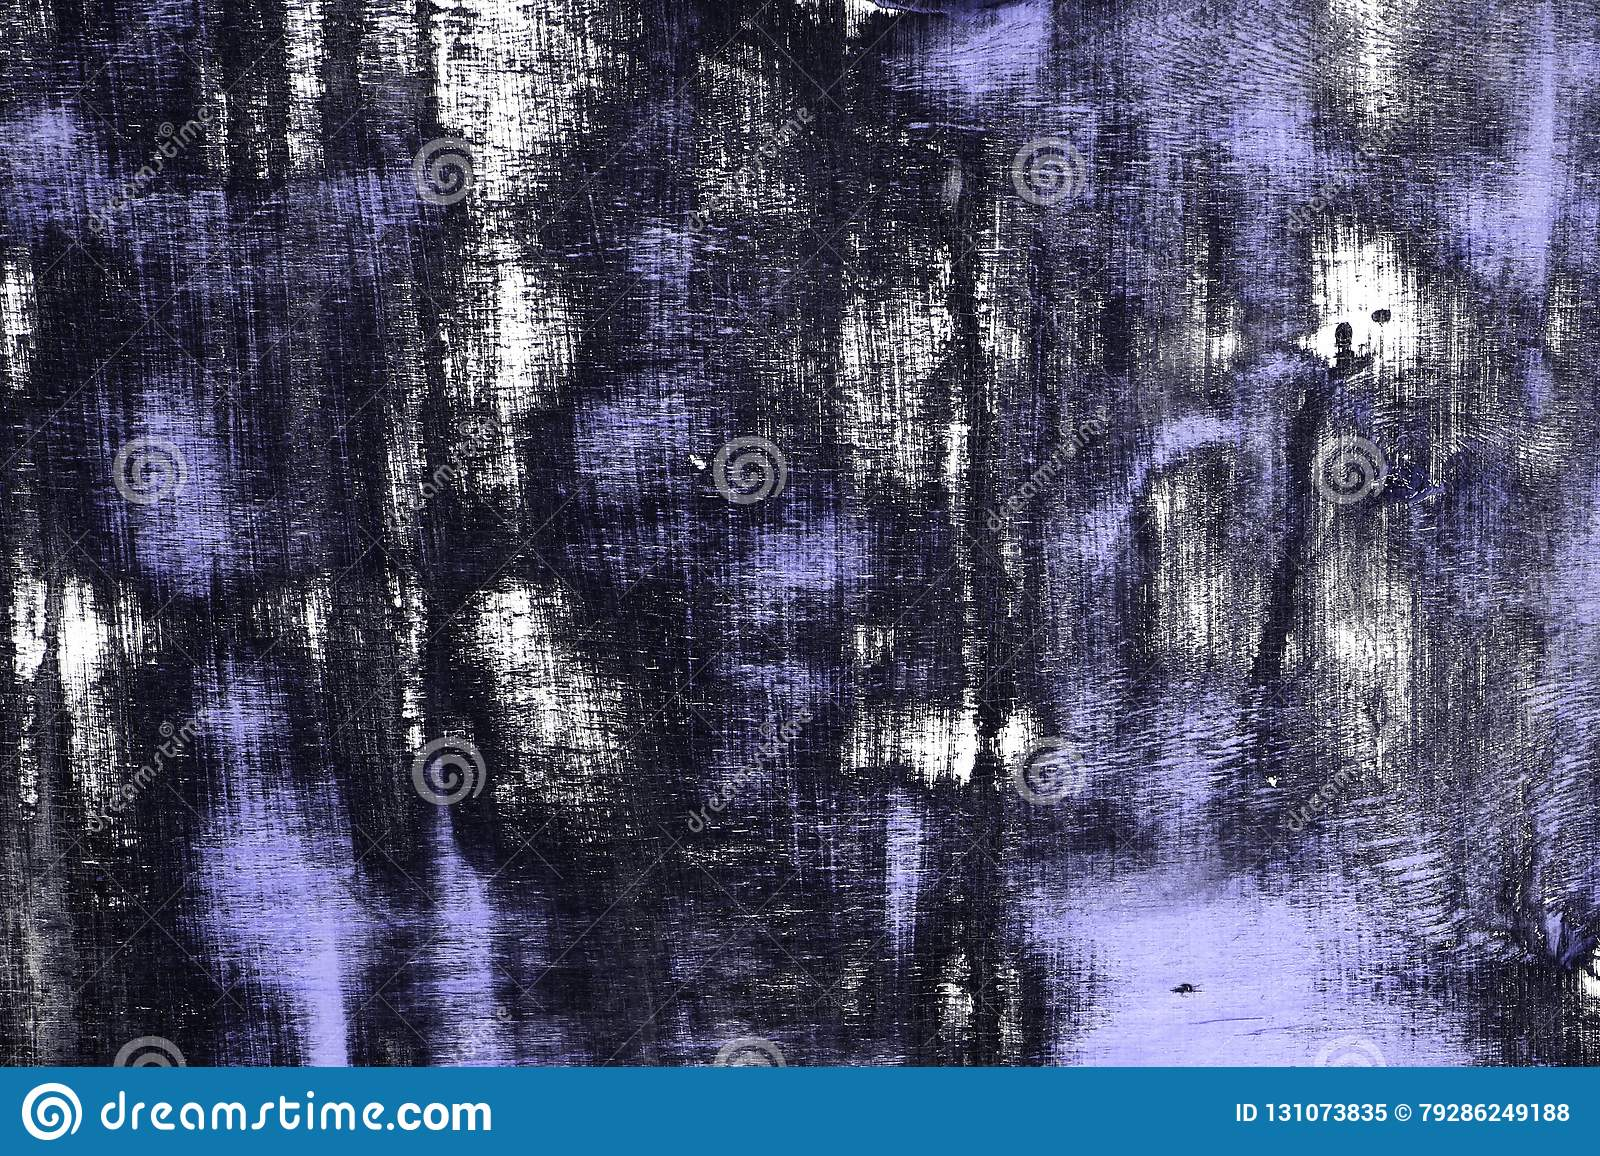 Blue grunge natural wood with a lot of scratched spots texture - cute abstract photo background